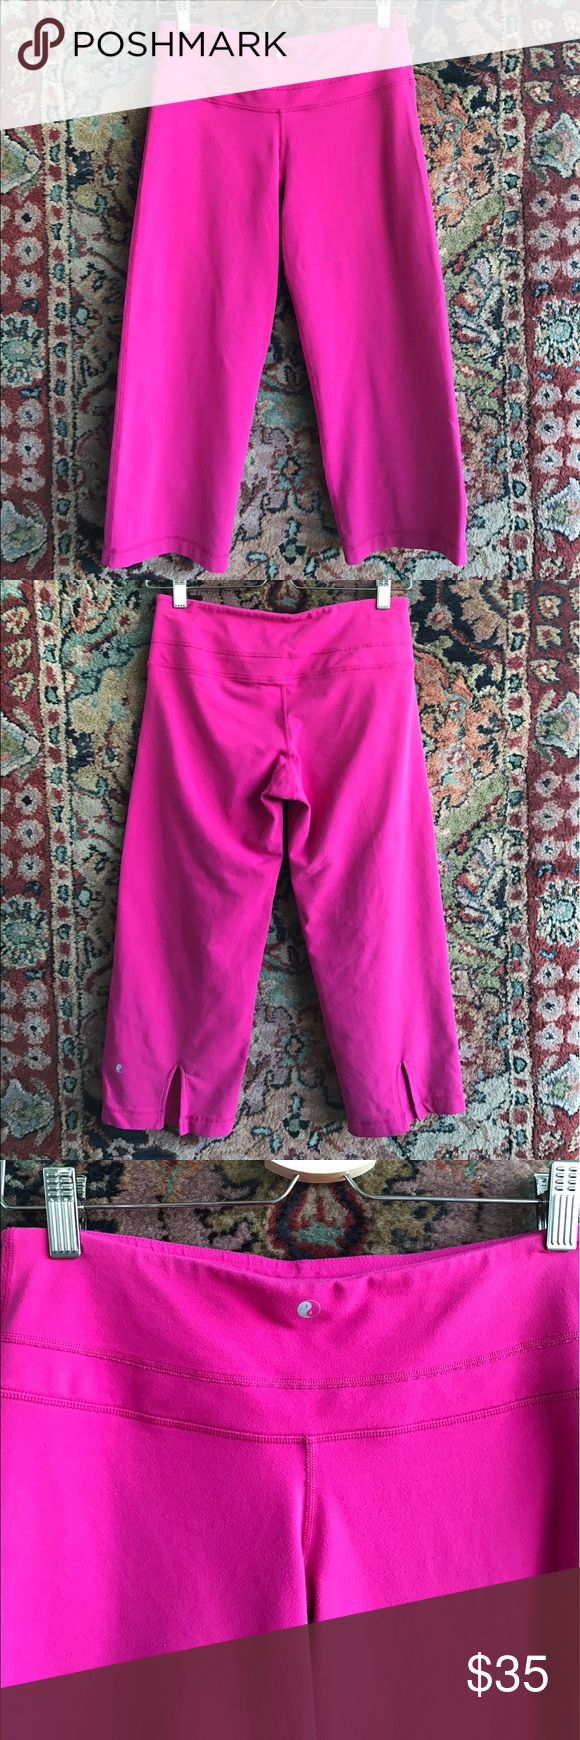 """Rese Pilates Cropped Pants Yoga, Pilates, errands... athleisure is the way and these are the pants you'll live in. Soft and stretchy keep you comfy and looking good. In great with a small dark spot on Leg as seen in last photo. Back calf slits for comfort. 13.5"""" waist, 9.25"""" rise and 21.5"""" inseam Rese Pilates Pants Capris"""